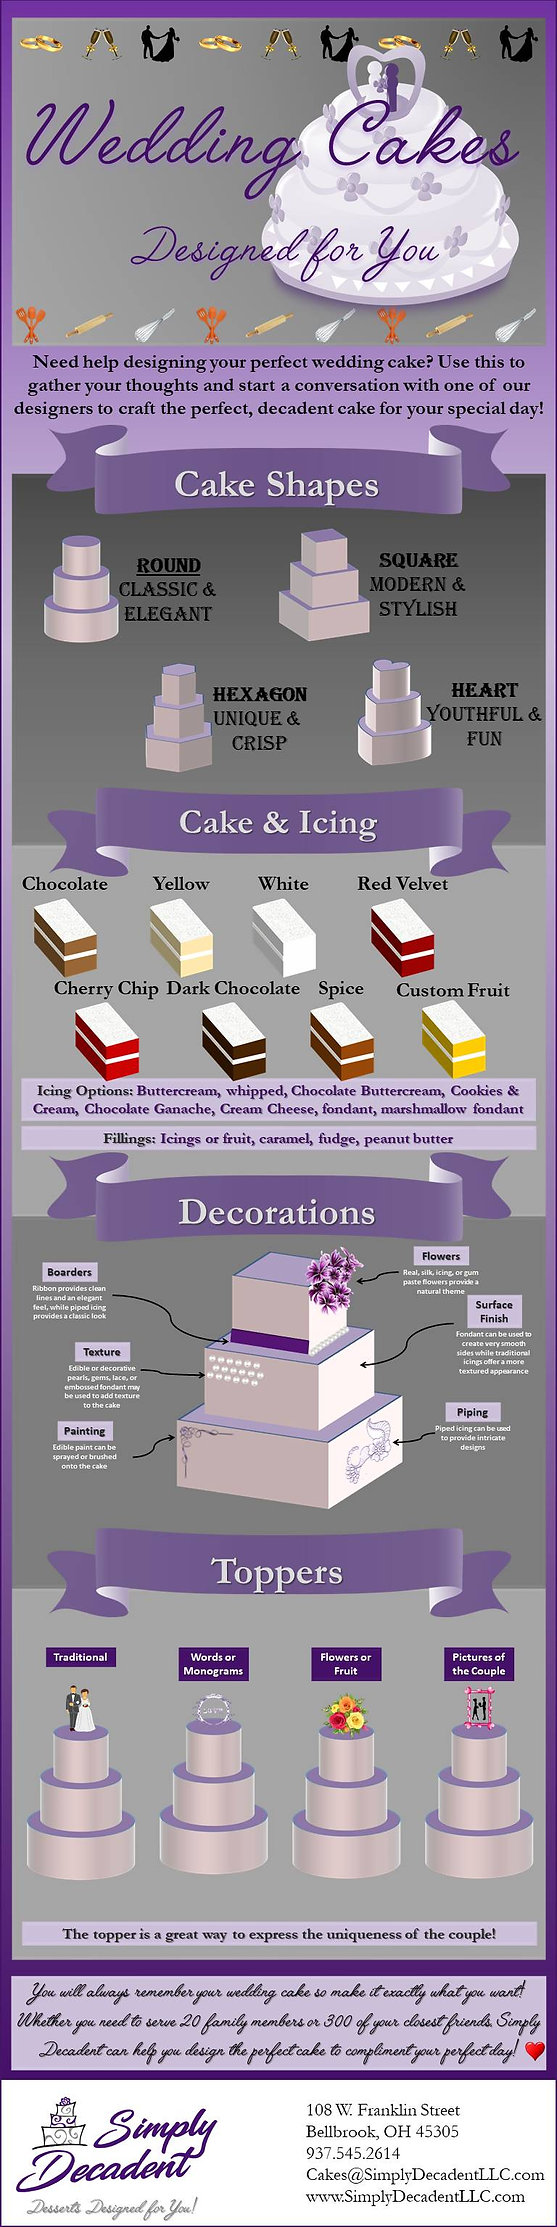 Wedding Cake Infographic.jpg